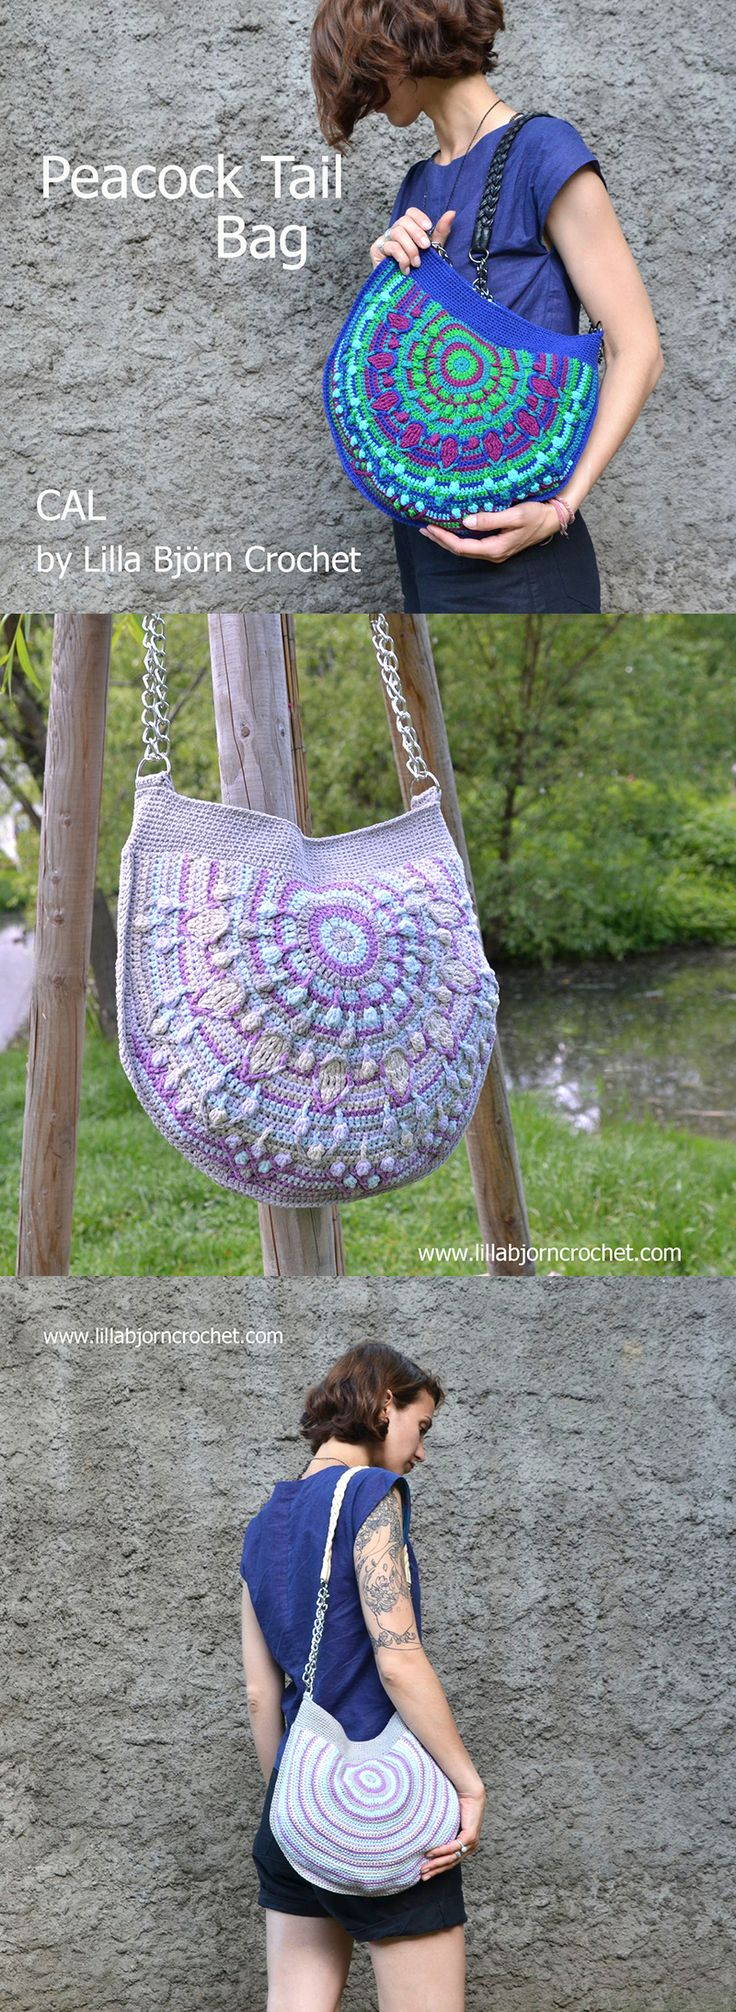 Peacock Tail Bag is a new CAL in overlay crochet. It is FREE and consists of 6 parts + tutorial about how to sew fabric lining. Each part will be published on my blog. And first tutorial will be released on Wednesday, August 17, 2016. Check the details here: http://www.lillabjorncrochet.com/2016/08/peacock-tail-bag-cal-general-information.html #PeacockTailBagCAL